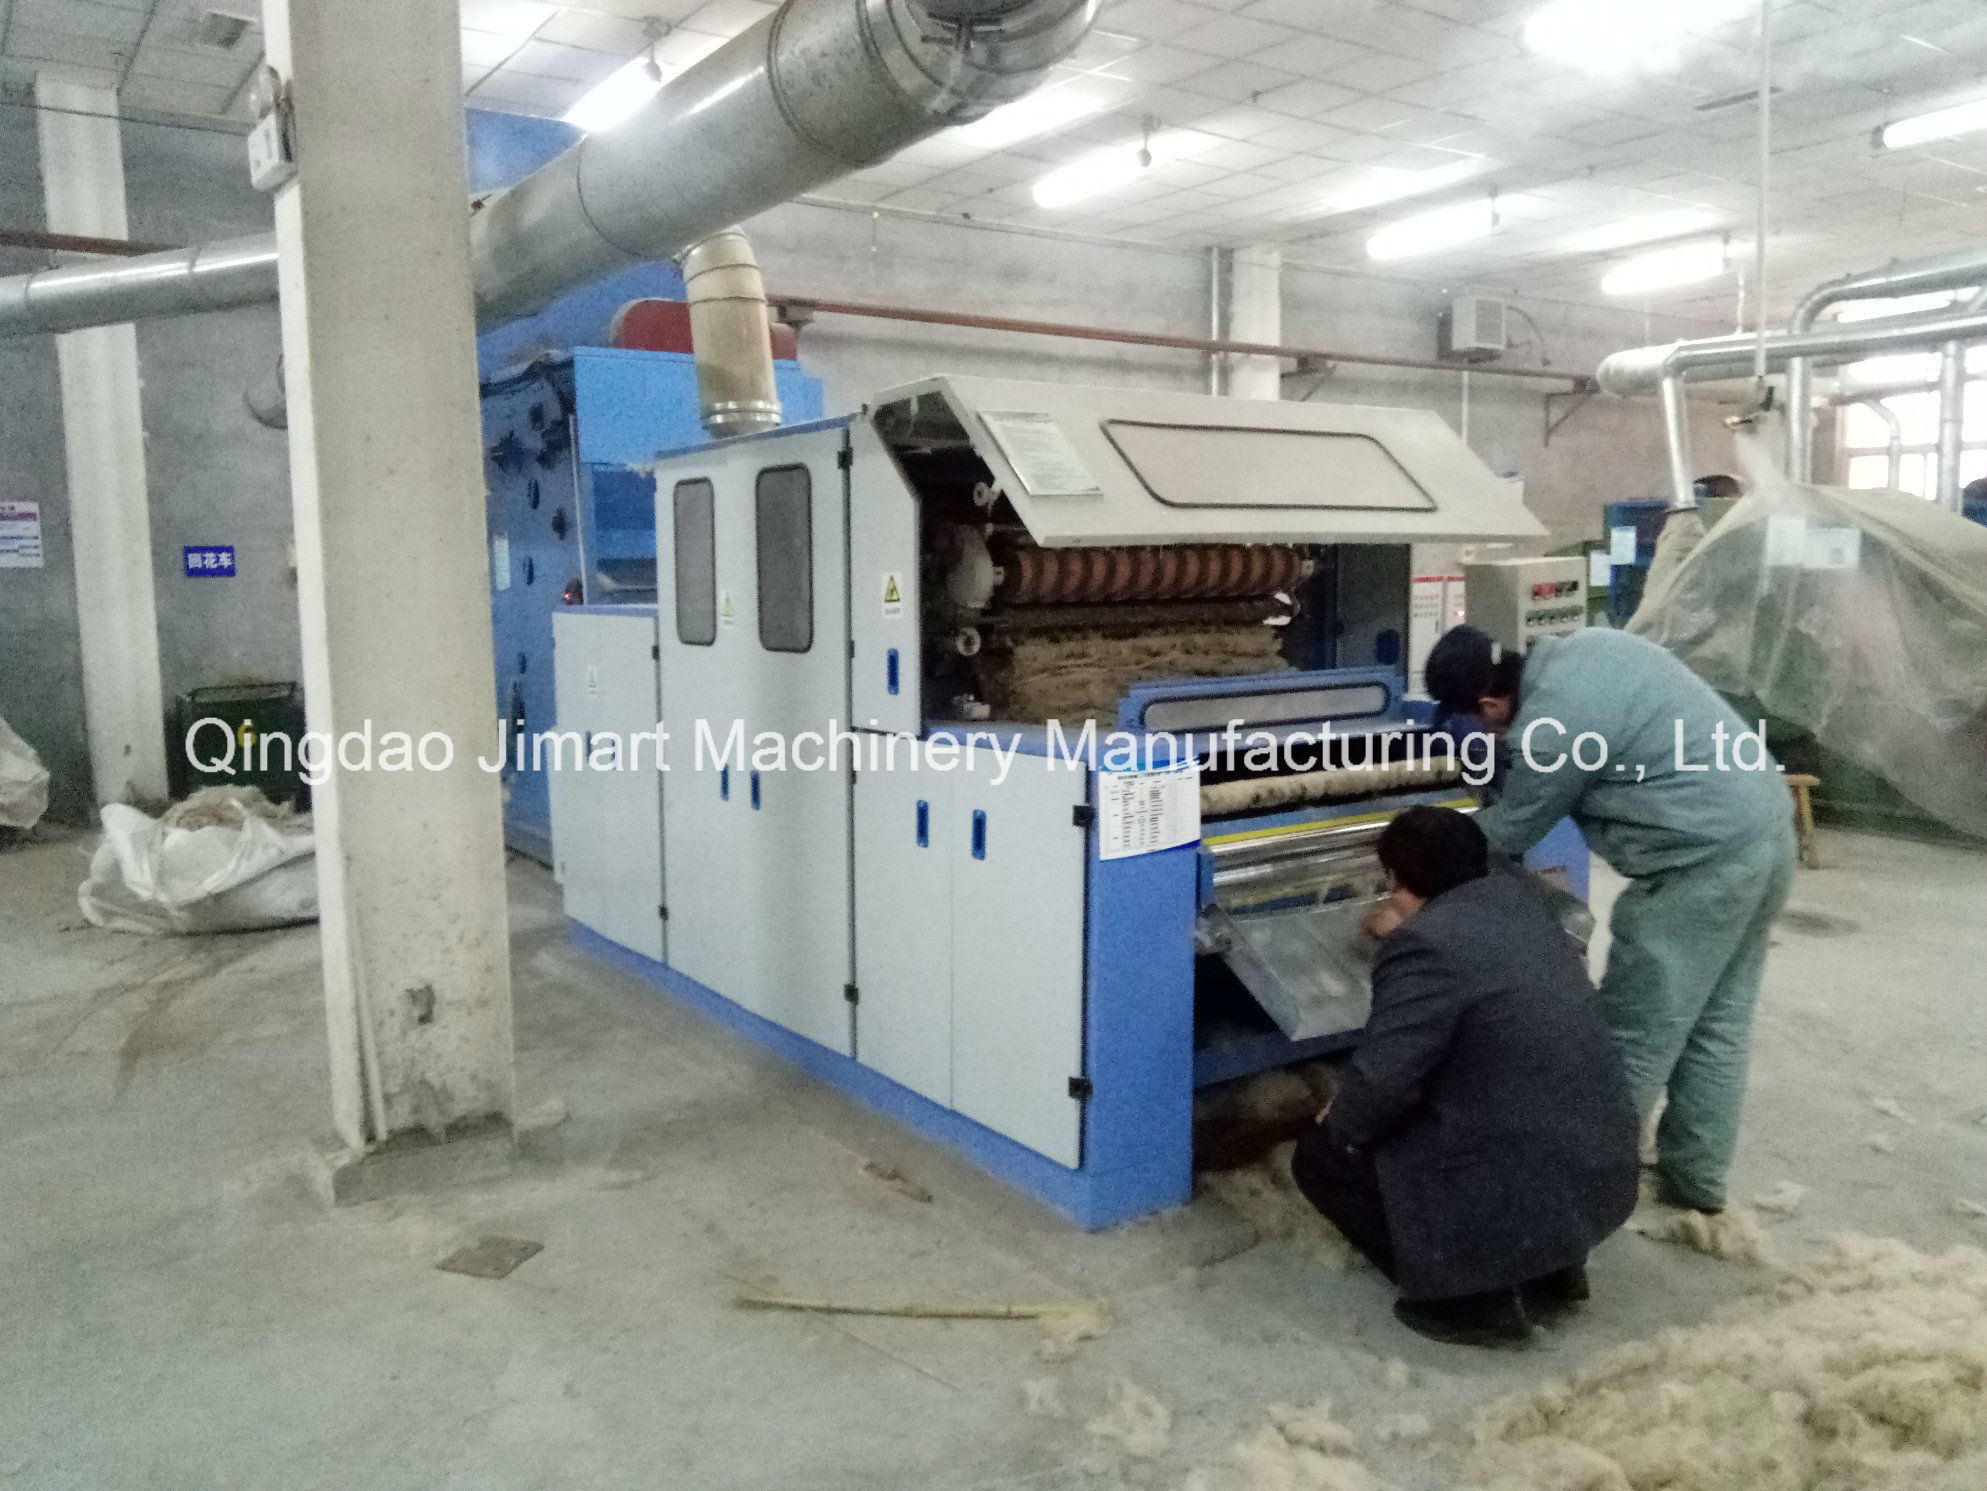 China Famous Brand Jimart Carding Machine Used in Cotton Wadding